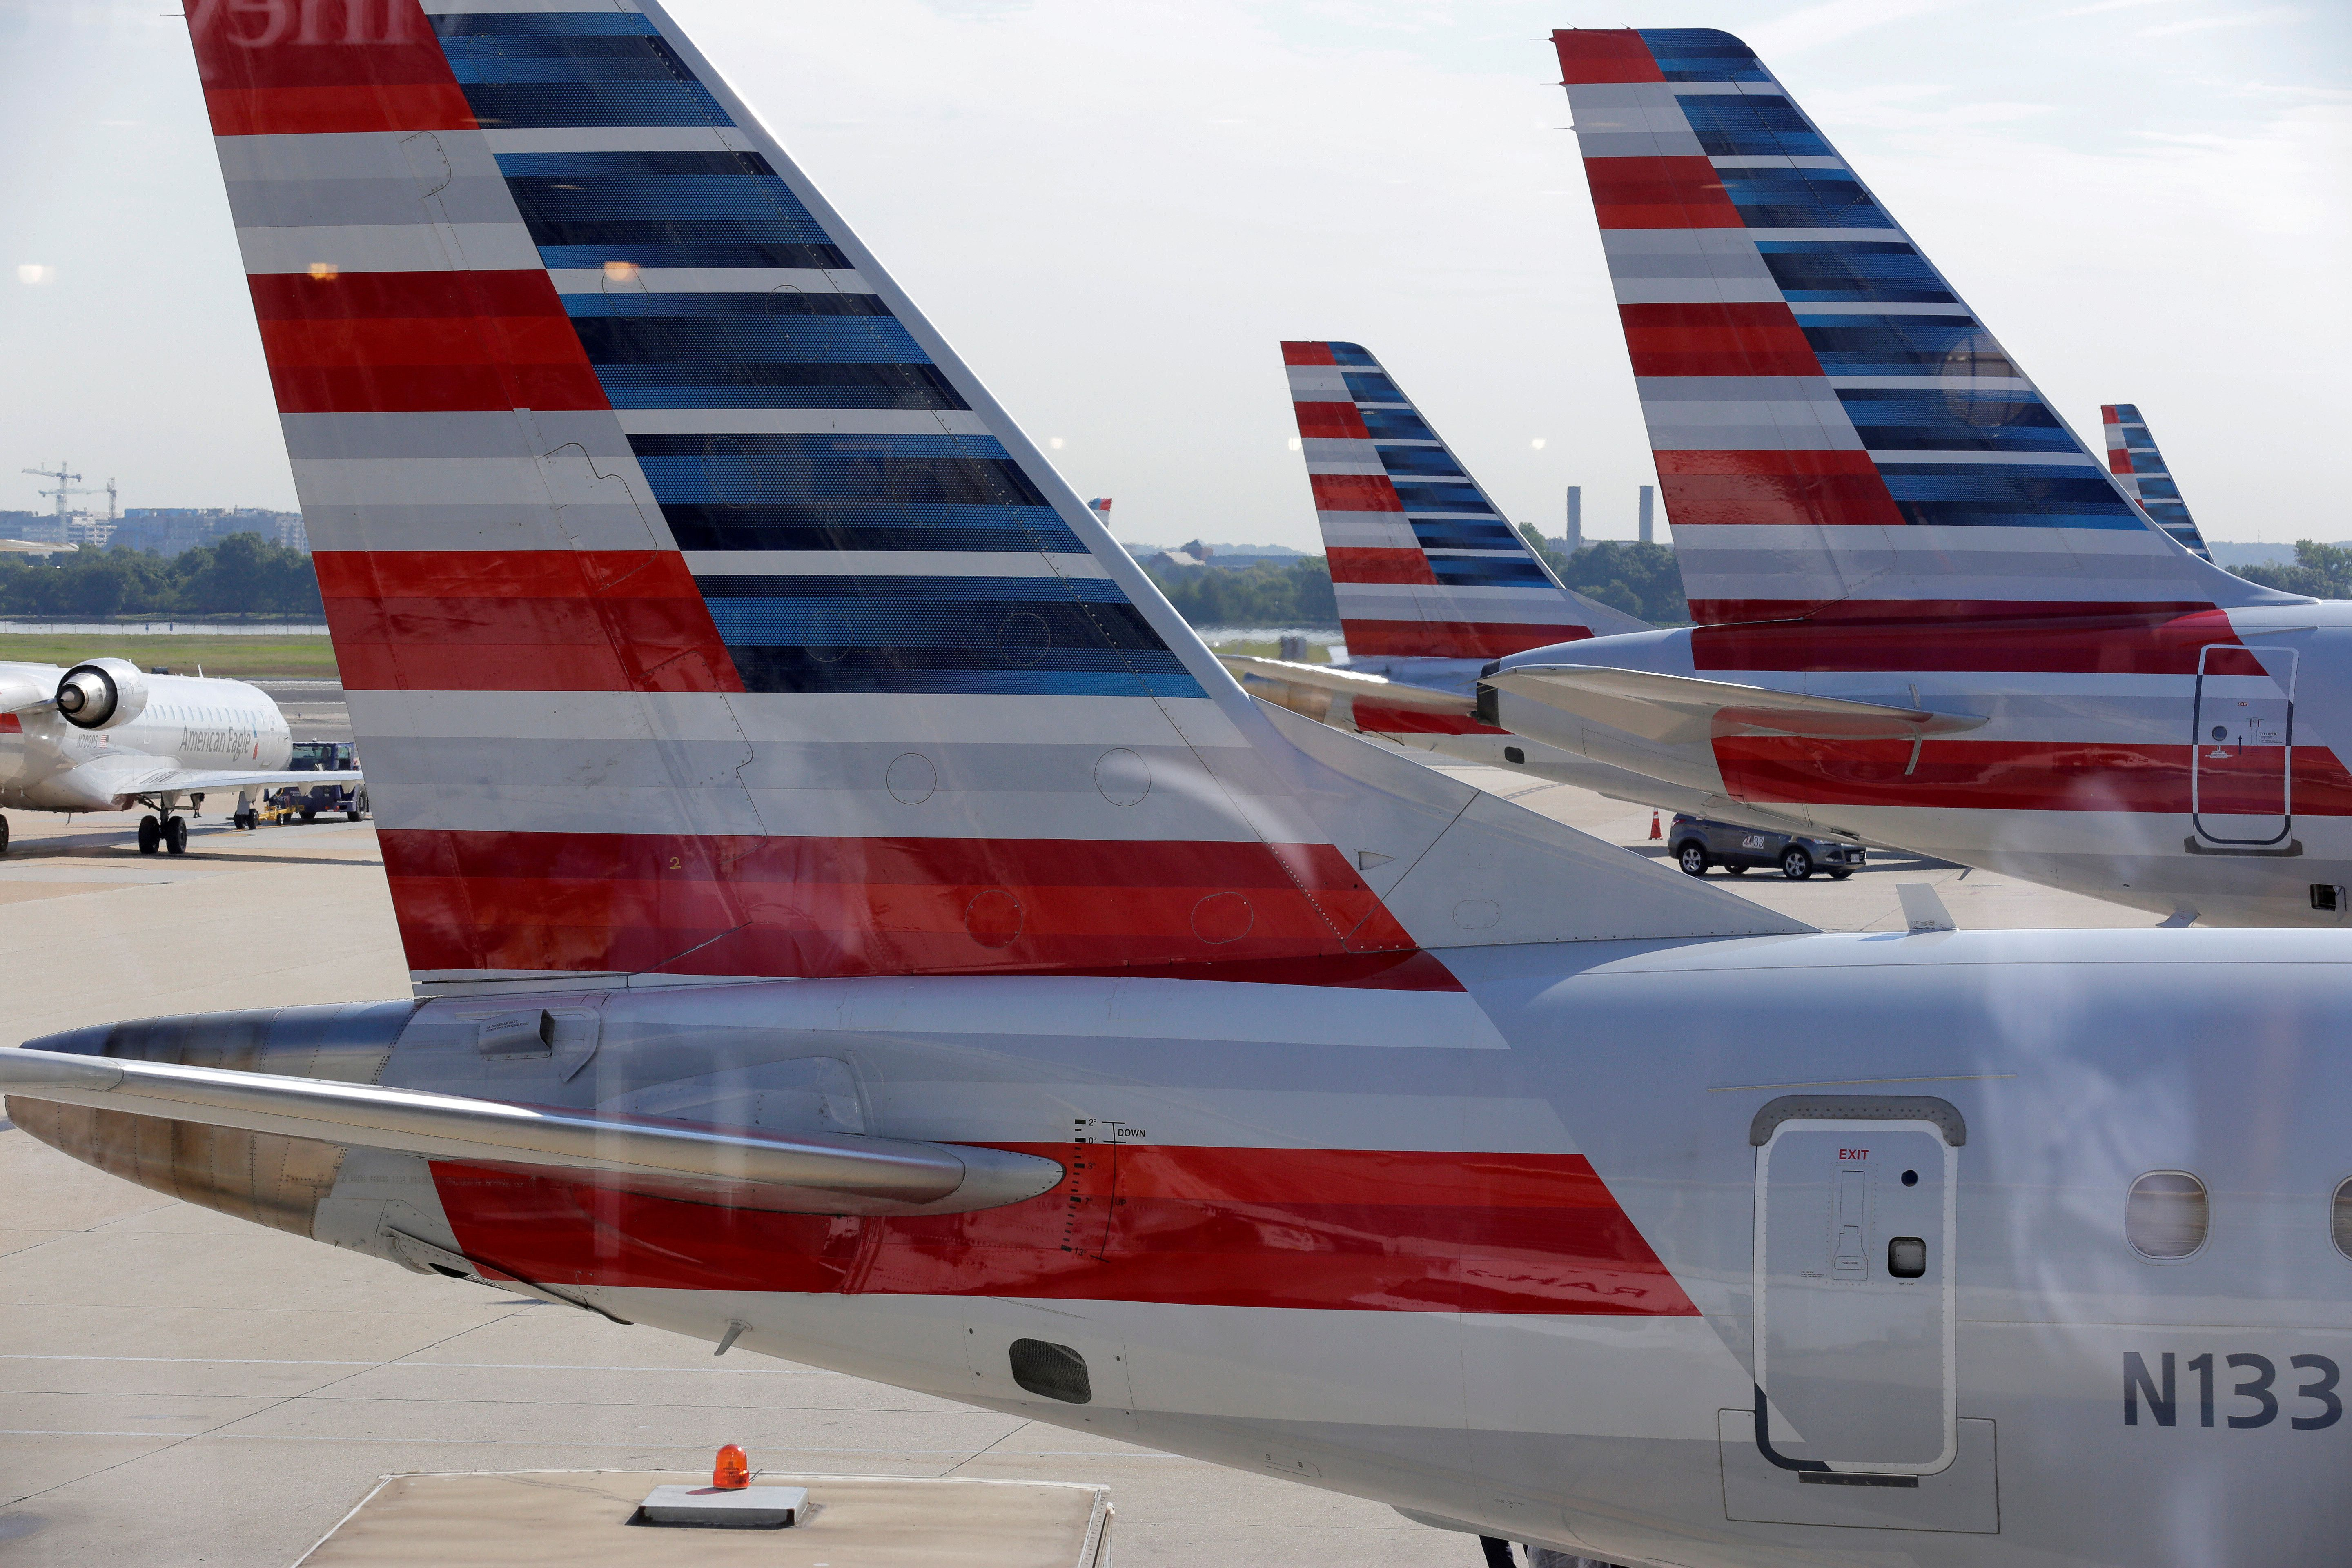 Disruptive American Airlines Passenger Removed From Plane